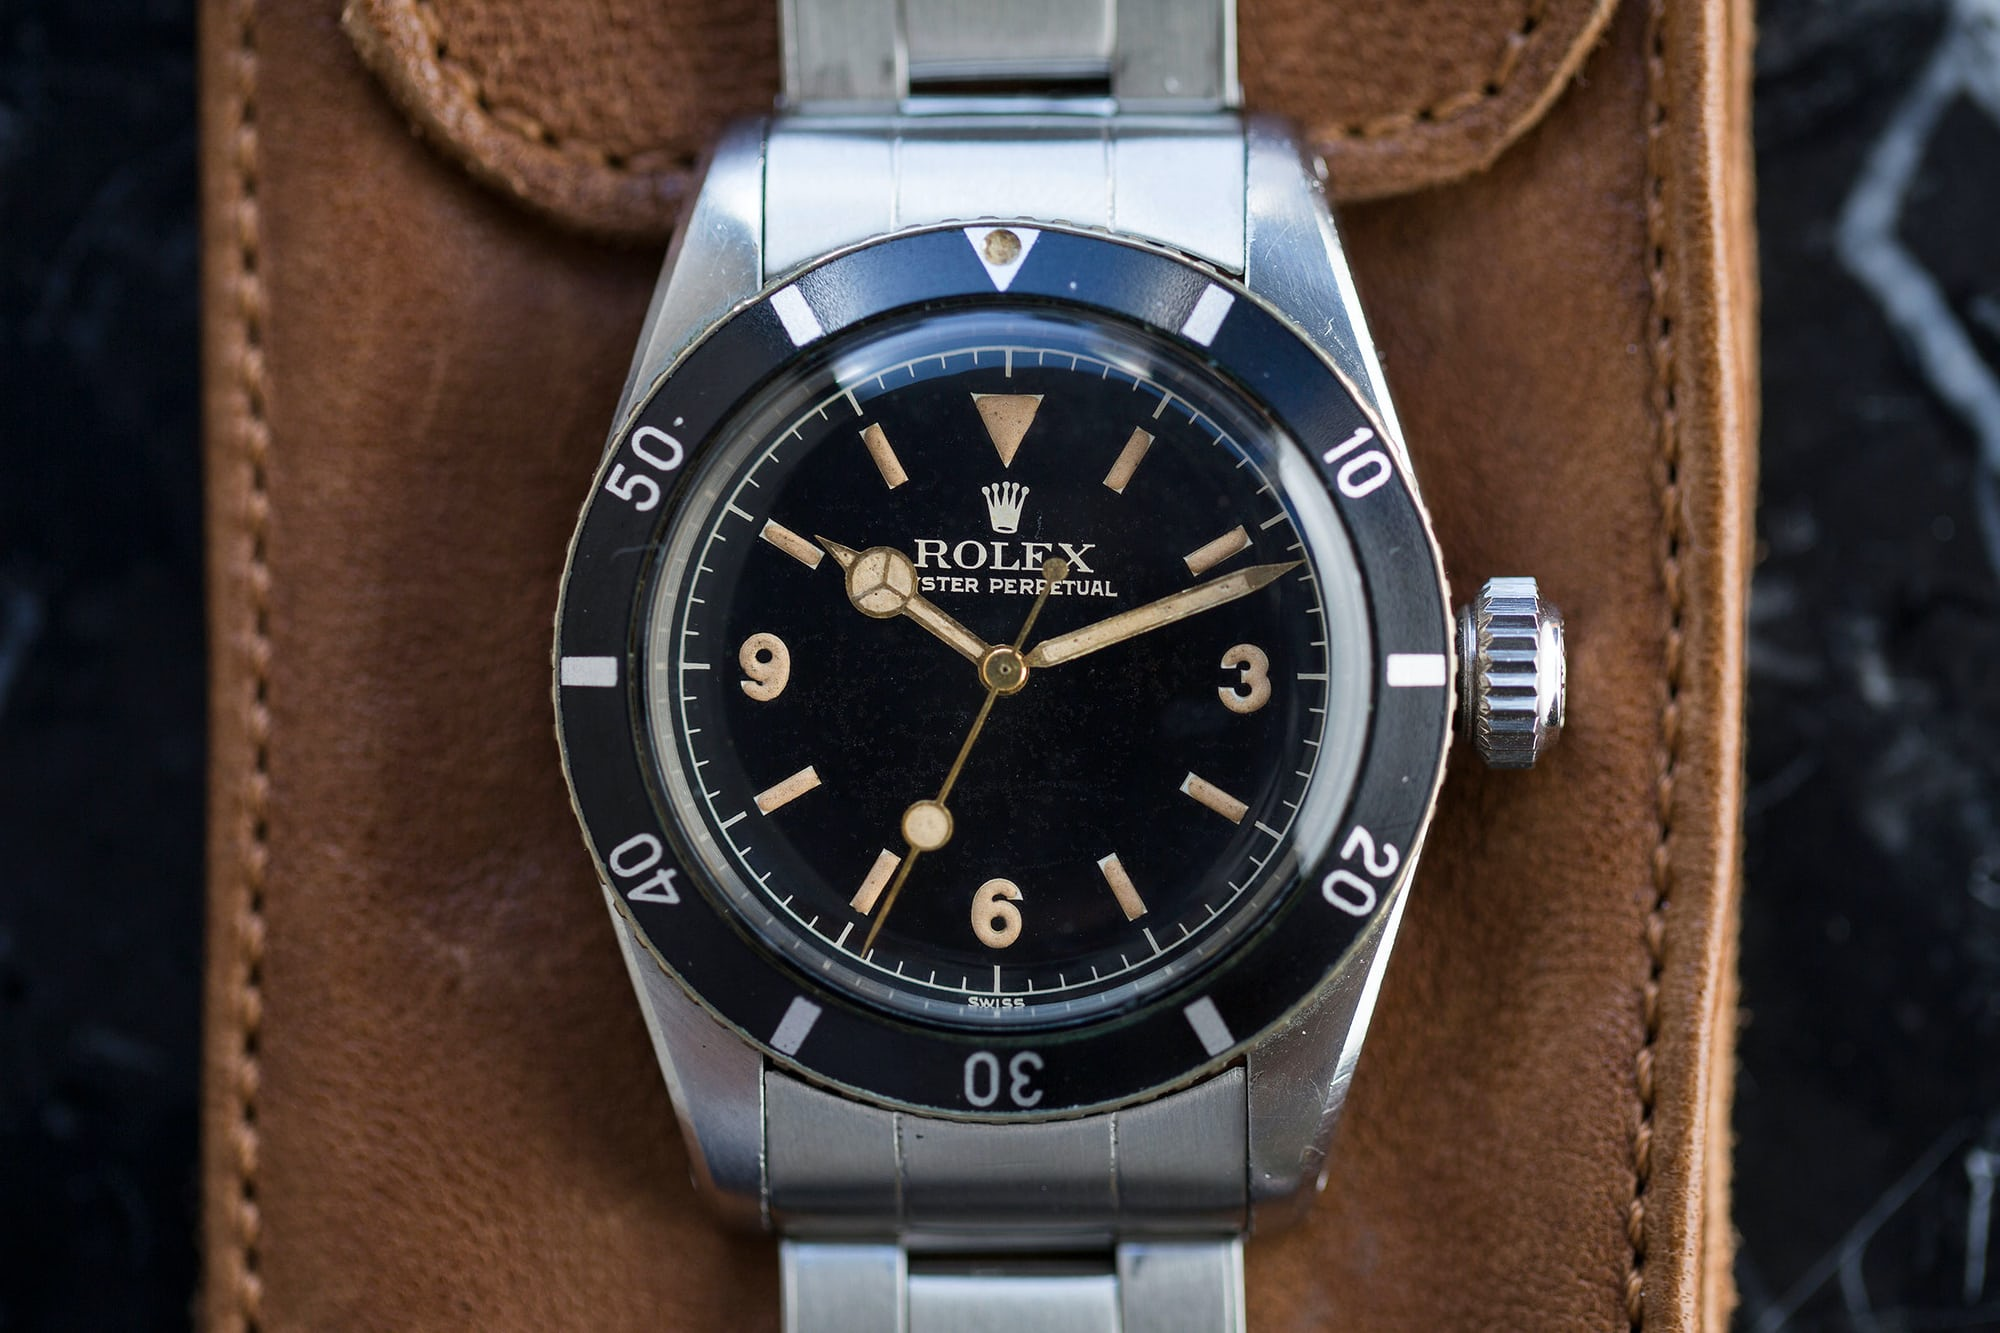 Rolex Reference 6200 Editorial: Price, Value, And The Strange Case Of The Nine Million Dollar Postage Stamp Editorial: Price, Value, And The Strange Case Of The Nine Million Dollar Postage Stamp 6200